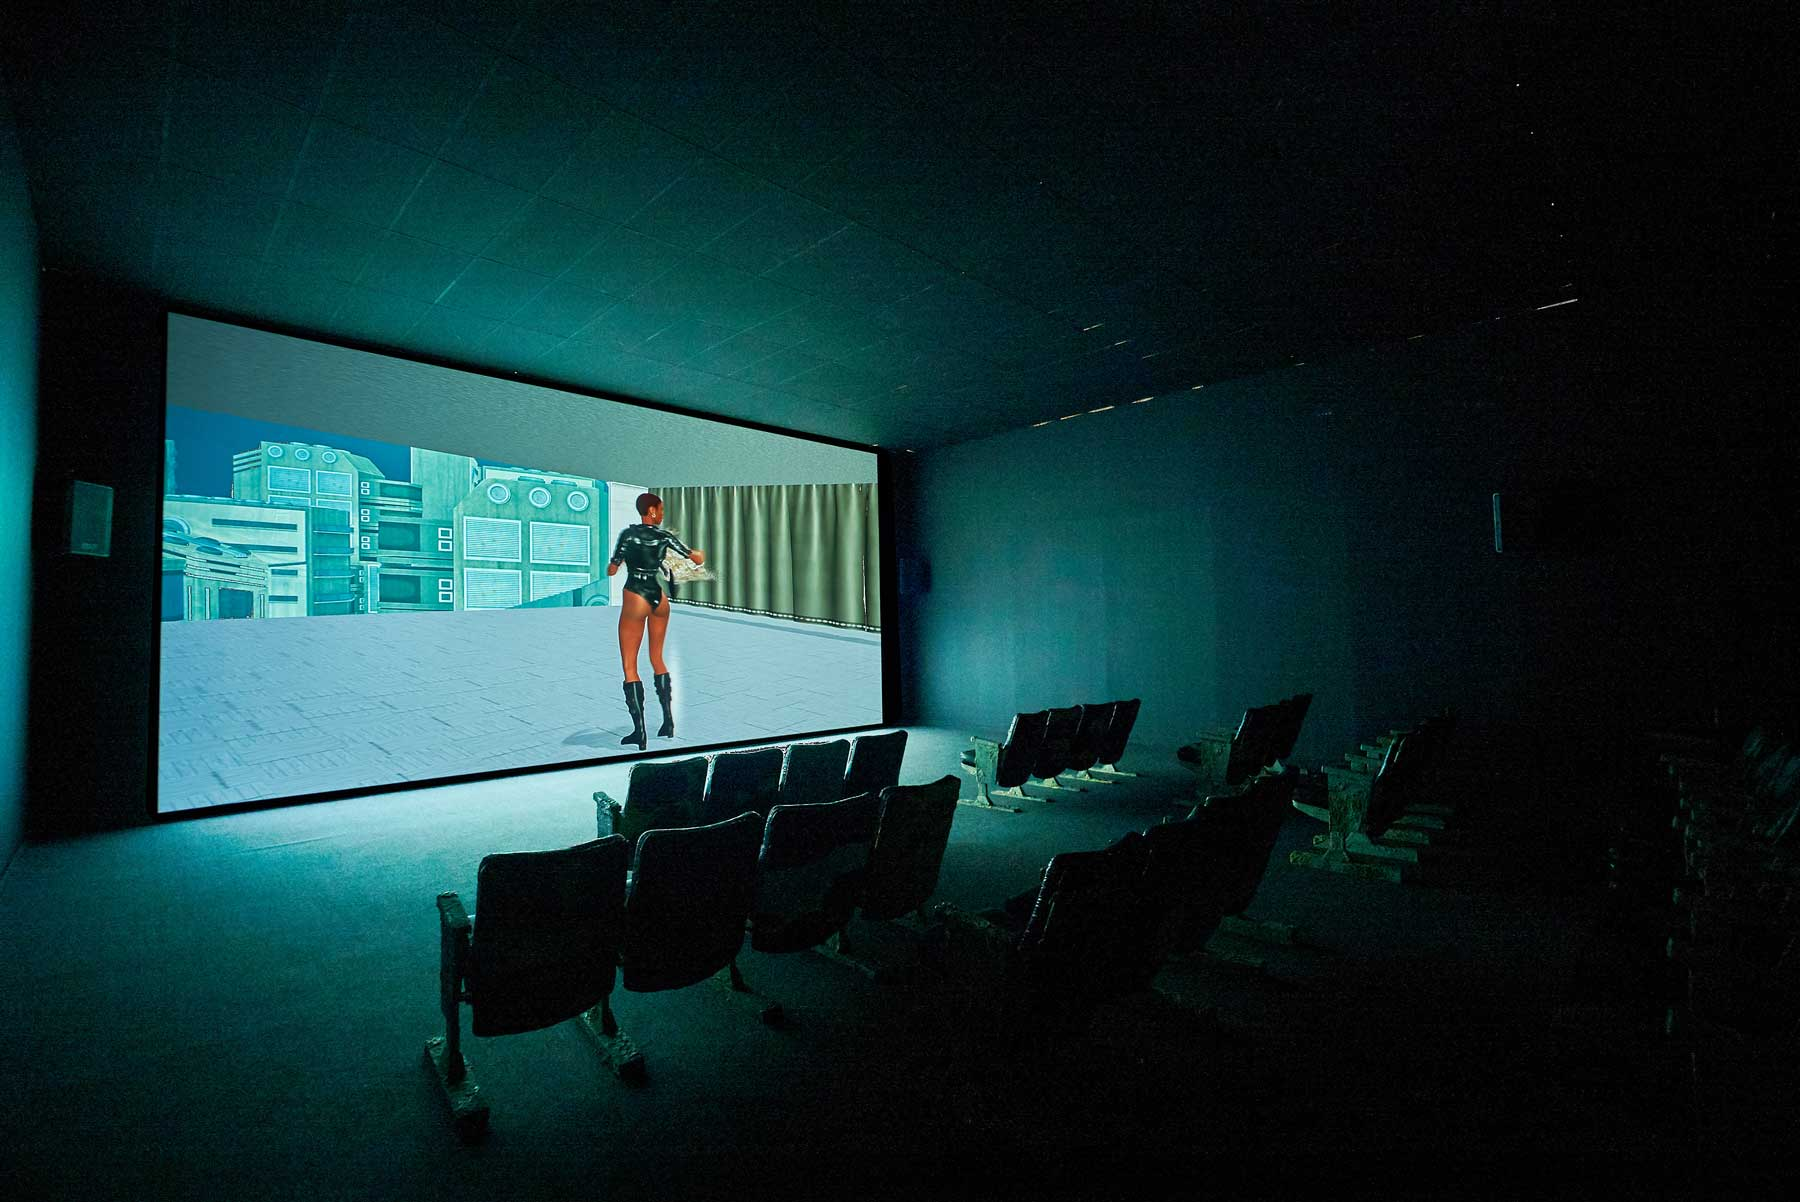 Jon Rafman ,    Dream Journal 2016 - 2017 , 2017, Single channel video, 32 theatre chairs, foam, resin, acrylic, wood, music by Oneohtrix Point Never and James Ferraro